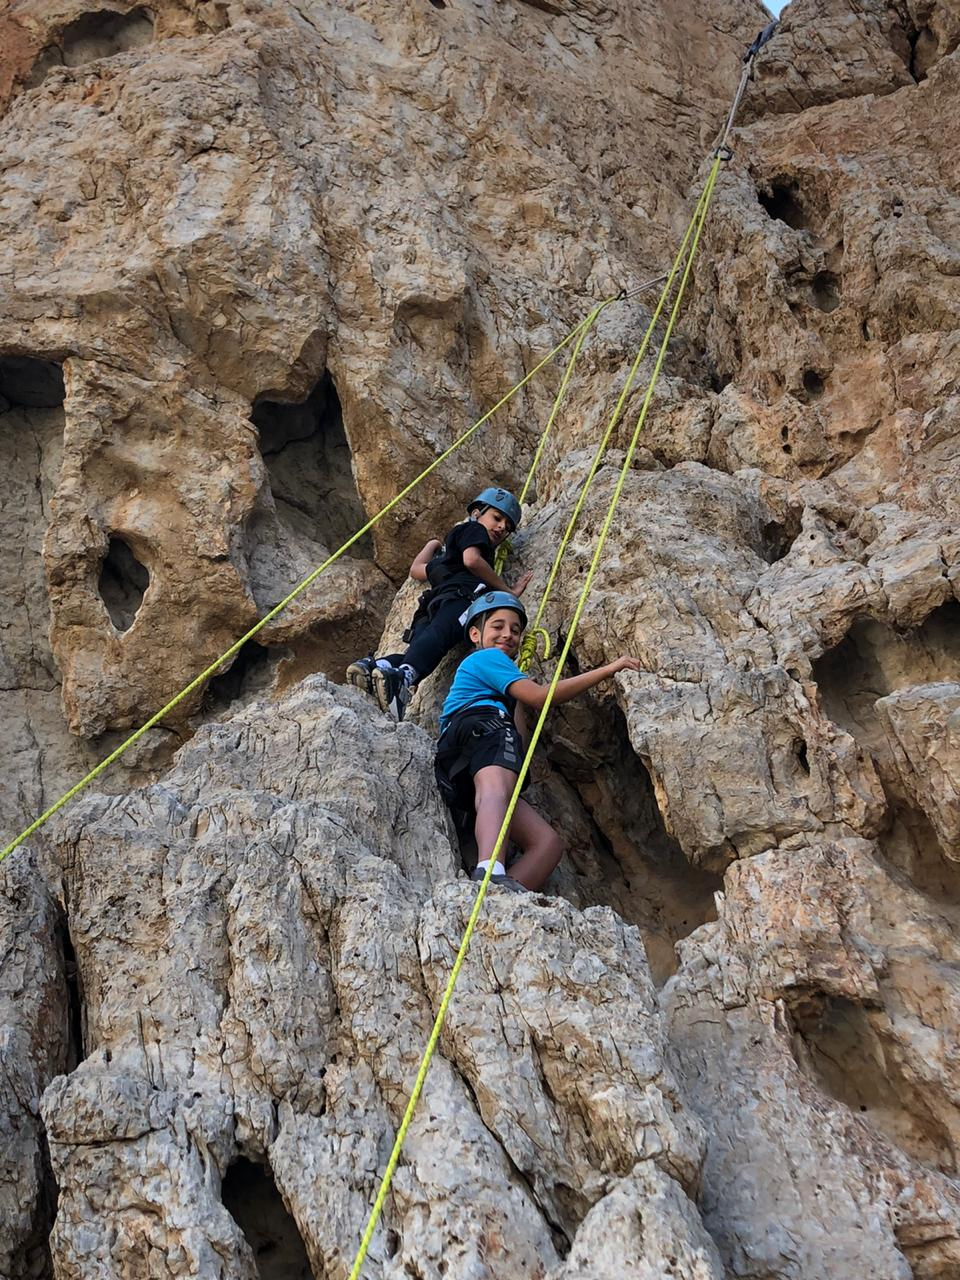 Grade 5 students rock climbing in Ras Al Khaimah.